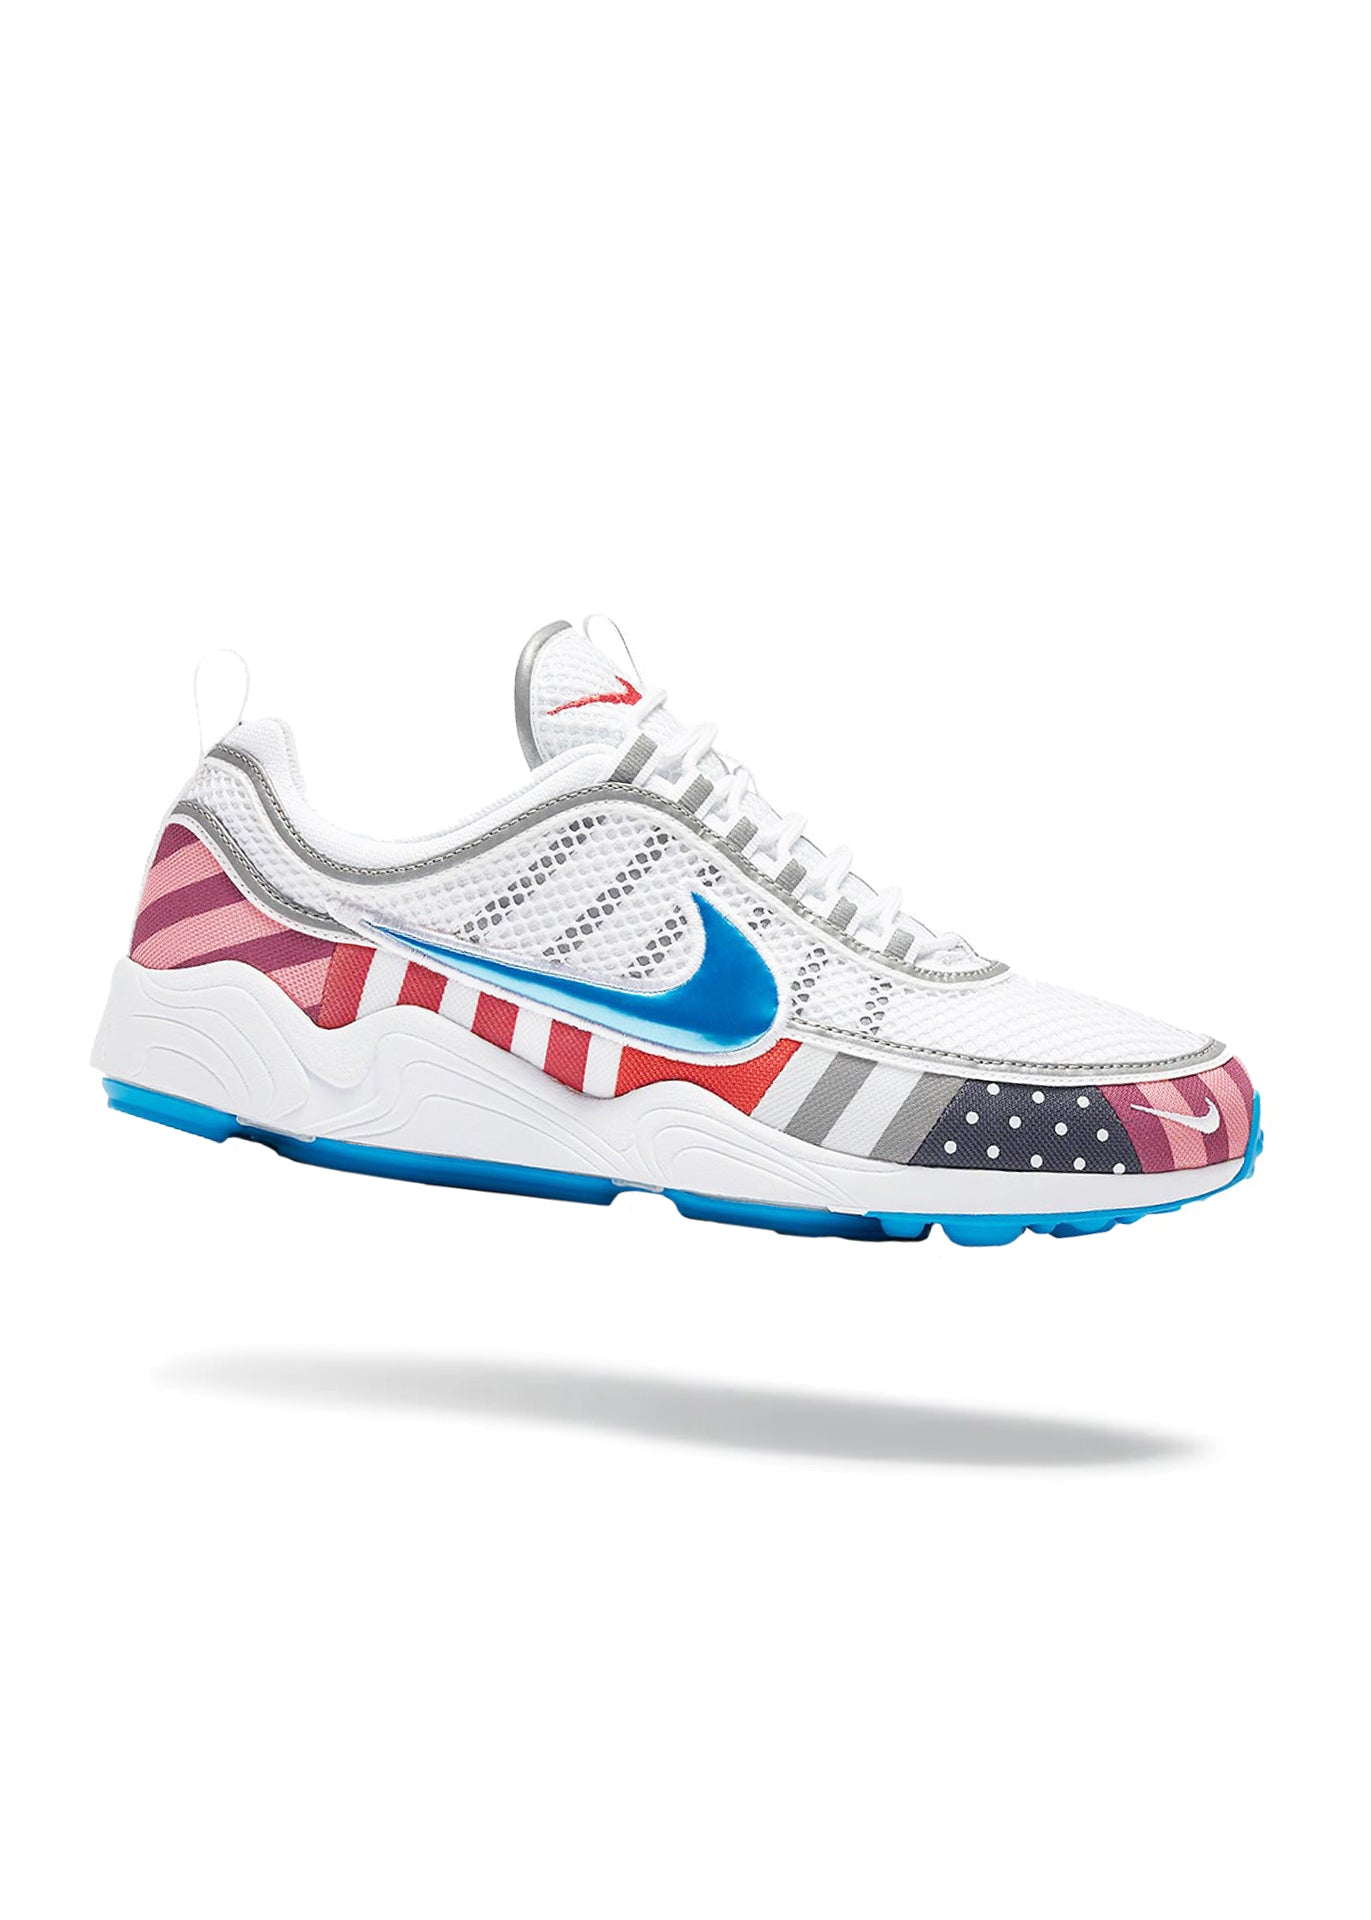 Air Zoom Spiridon Parra